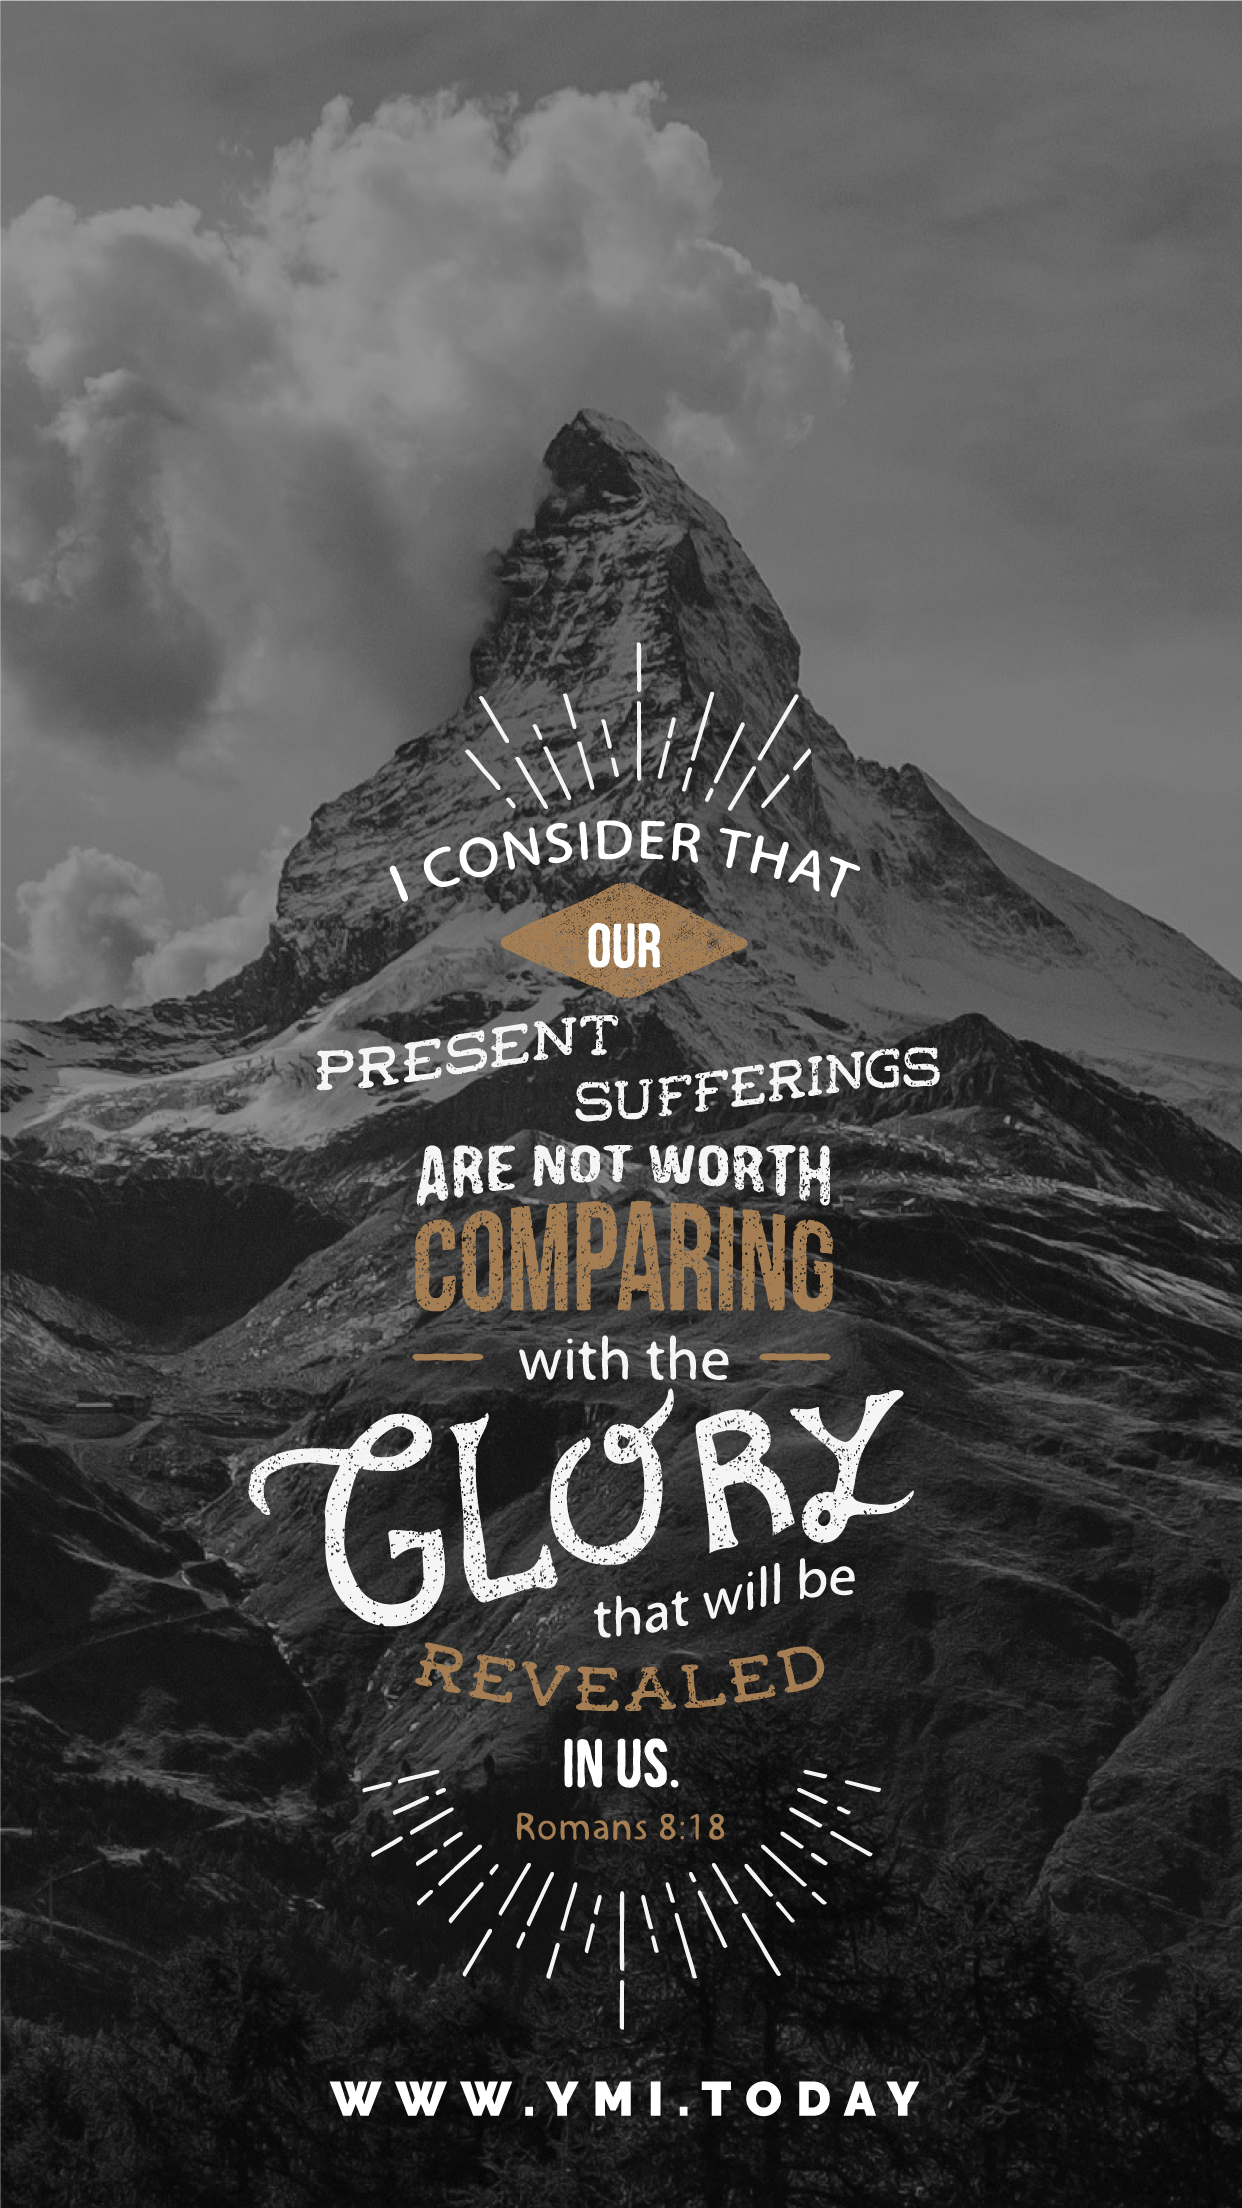 YMI July 2016 Phone Lockscreen - I consider that our present sufferings are not worth comparing with the glory that will be revealed in us. - Romas 8:18